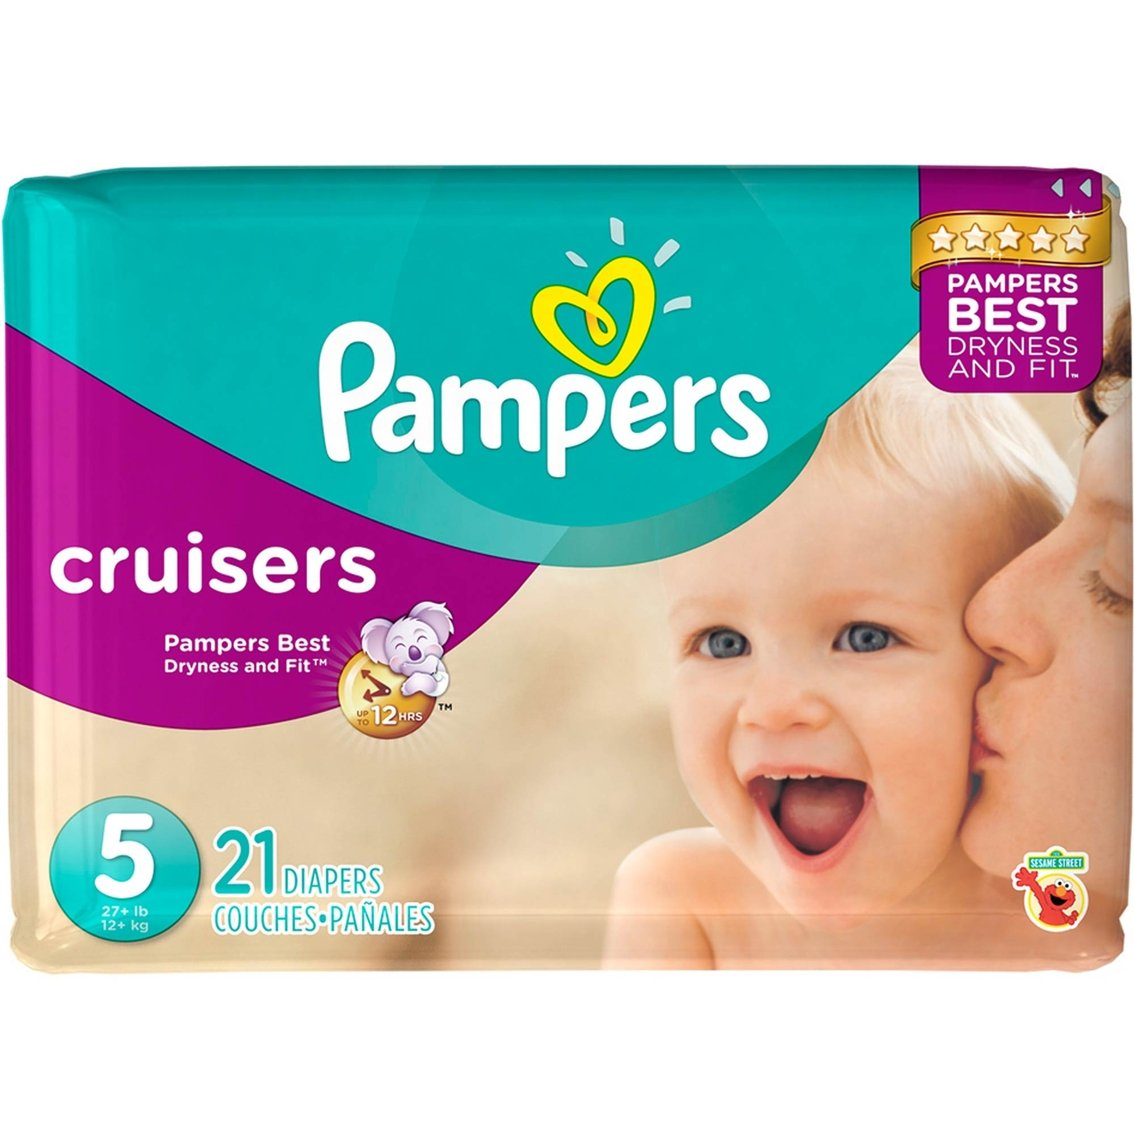 Amazon.com: Diaper / Baby Wipe Travel Pack | Includes Pampers Cruisers Size 5 (21 count) and Sensitive Wipes Resealable Container (18 count): Health ...